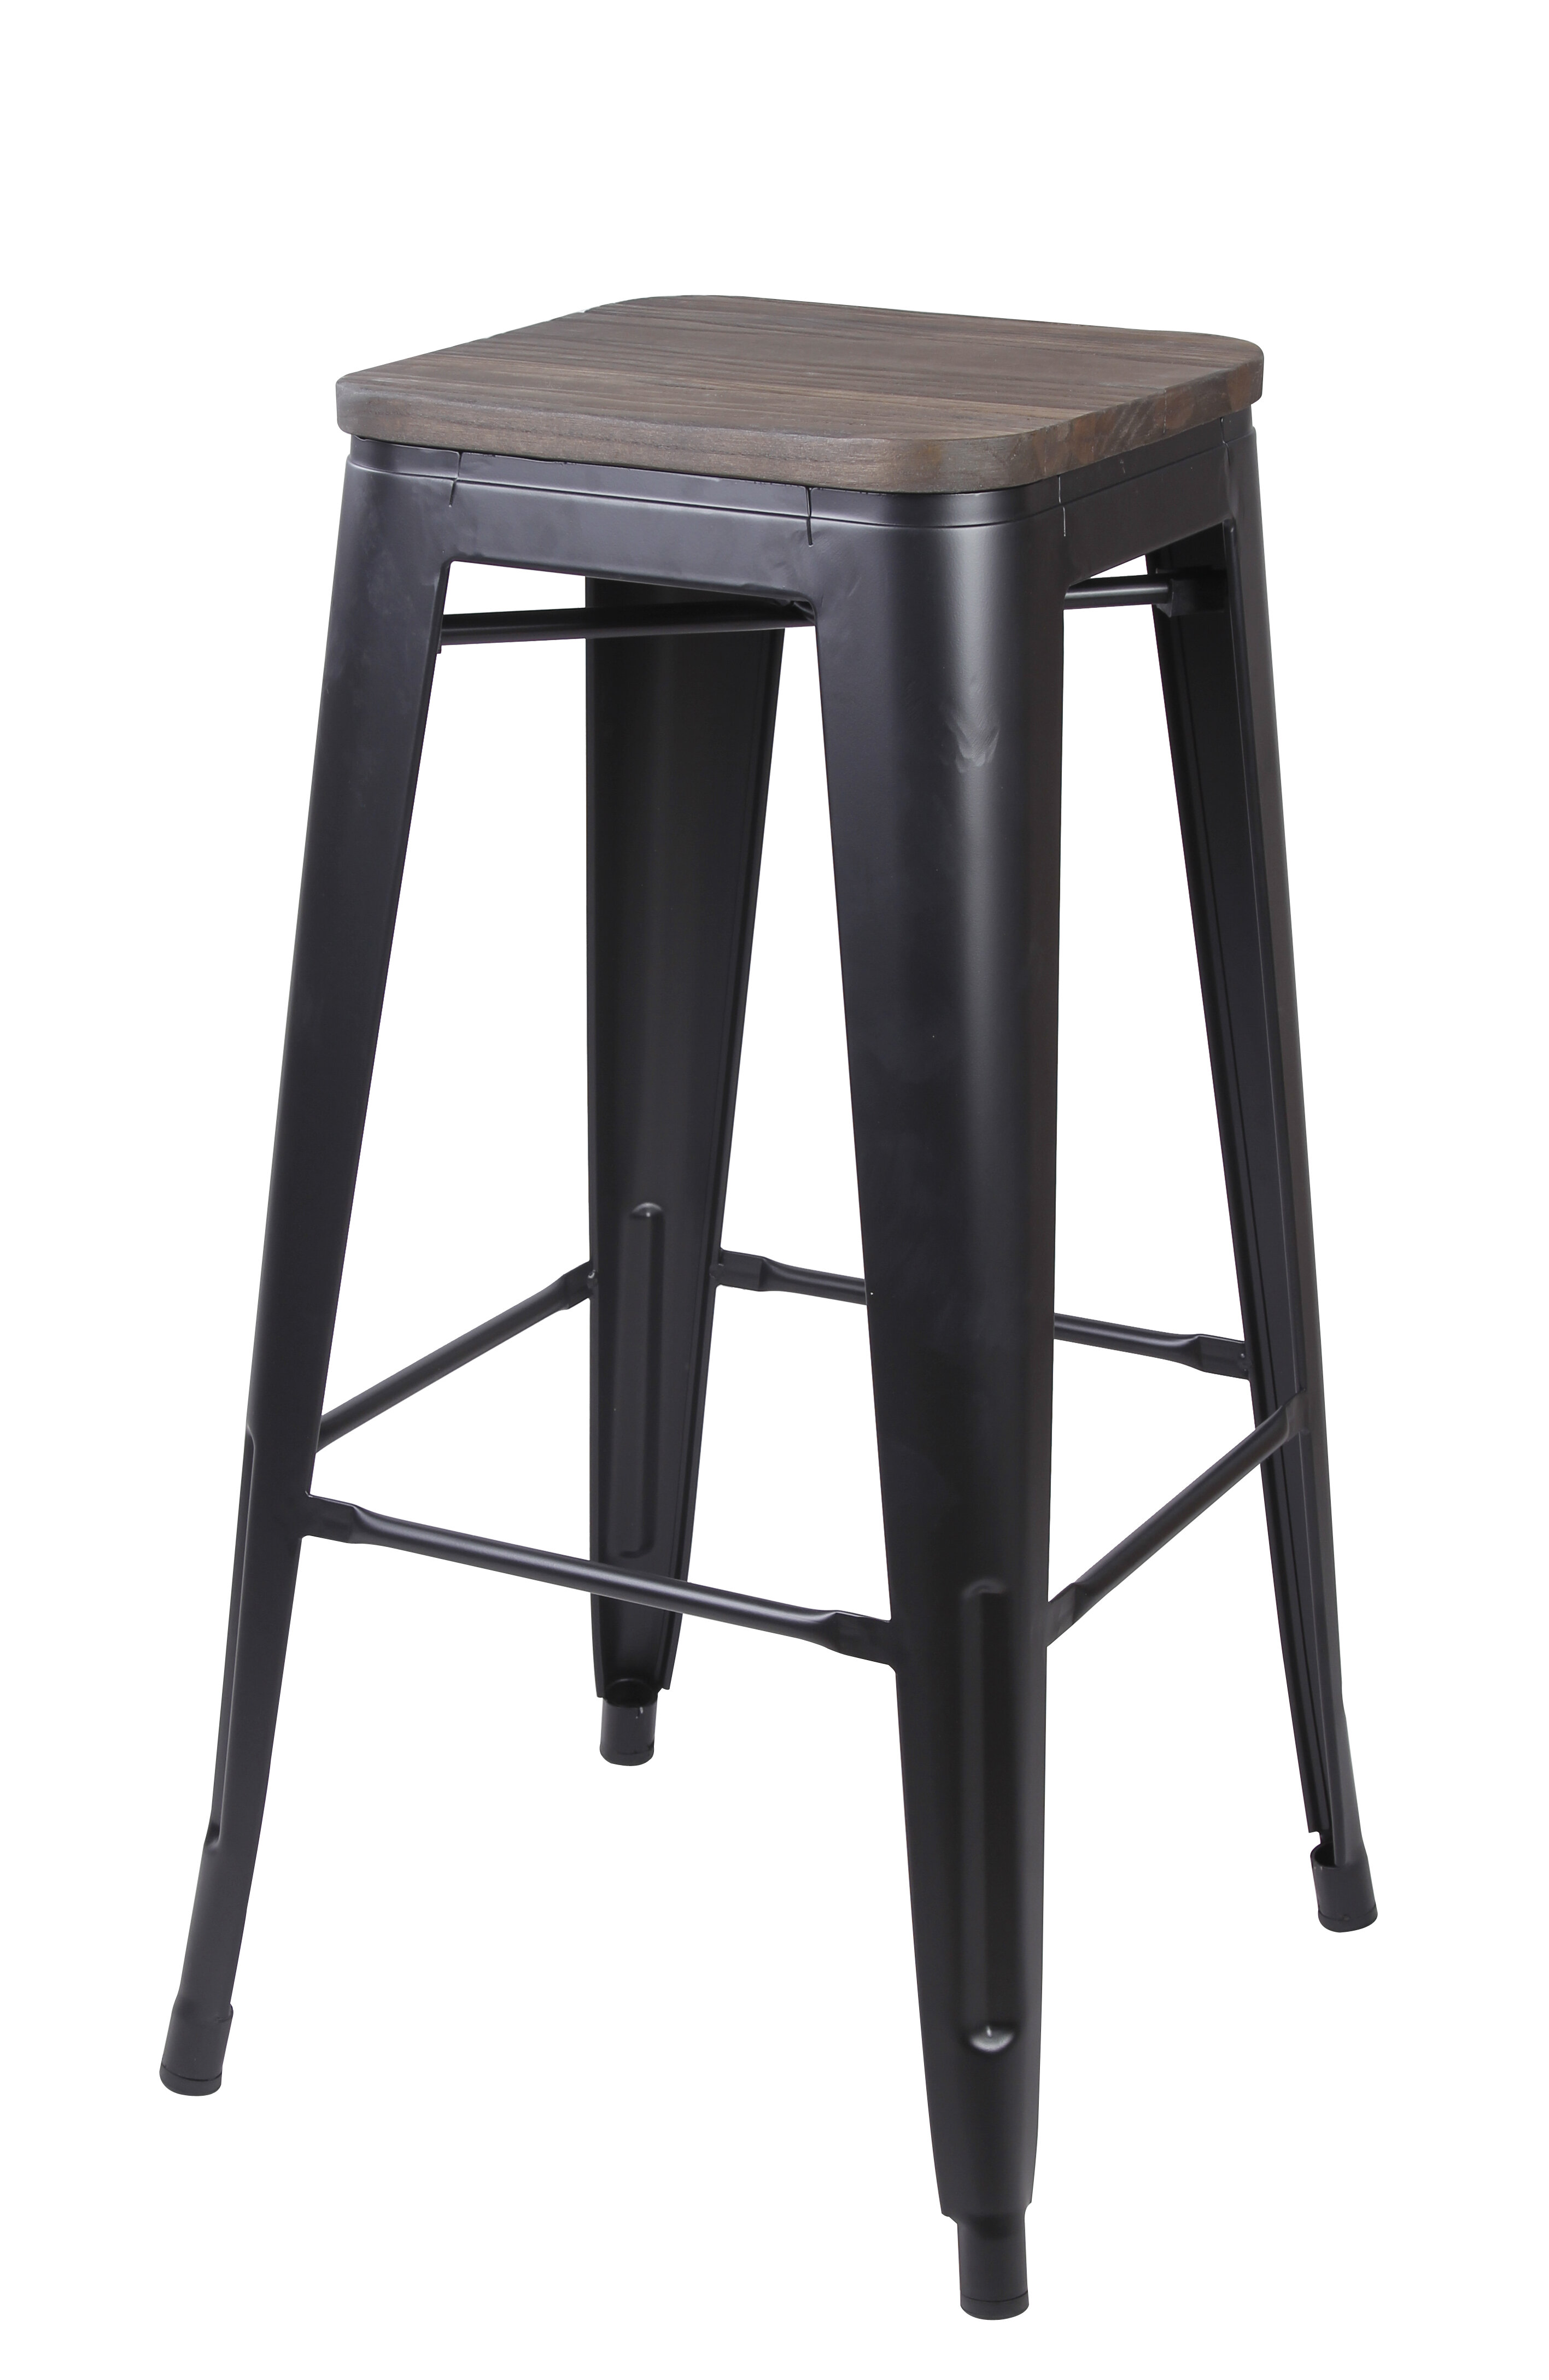 Williston Forge Calanthe 30 Bar Stool Reviews Wayfair